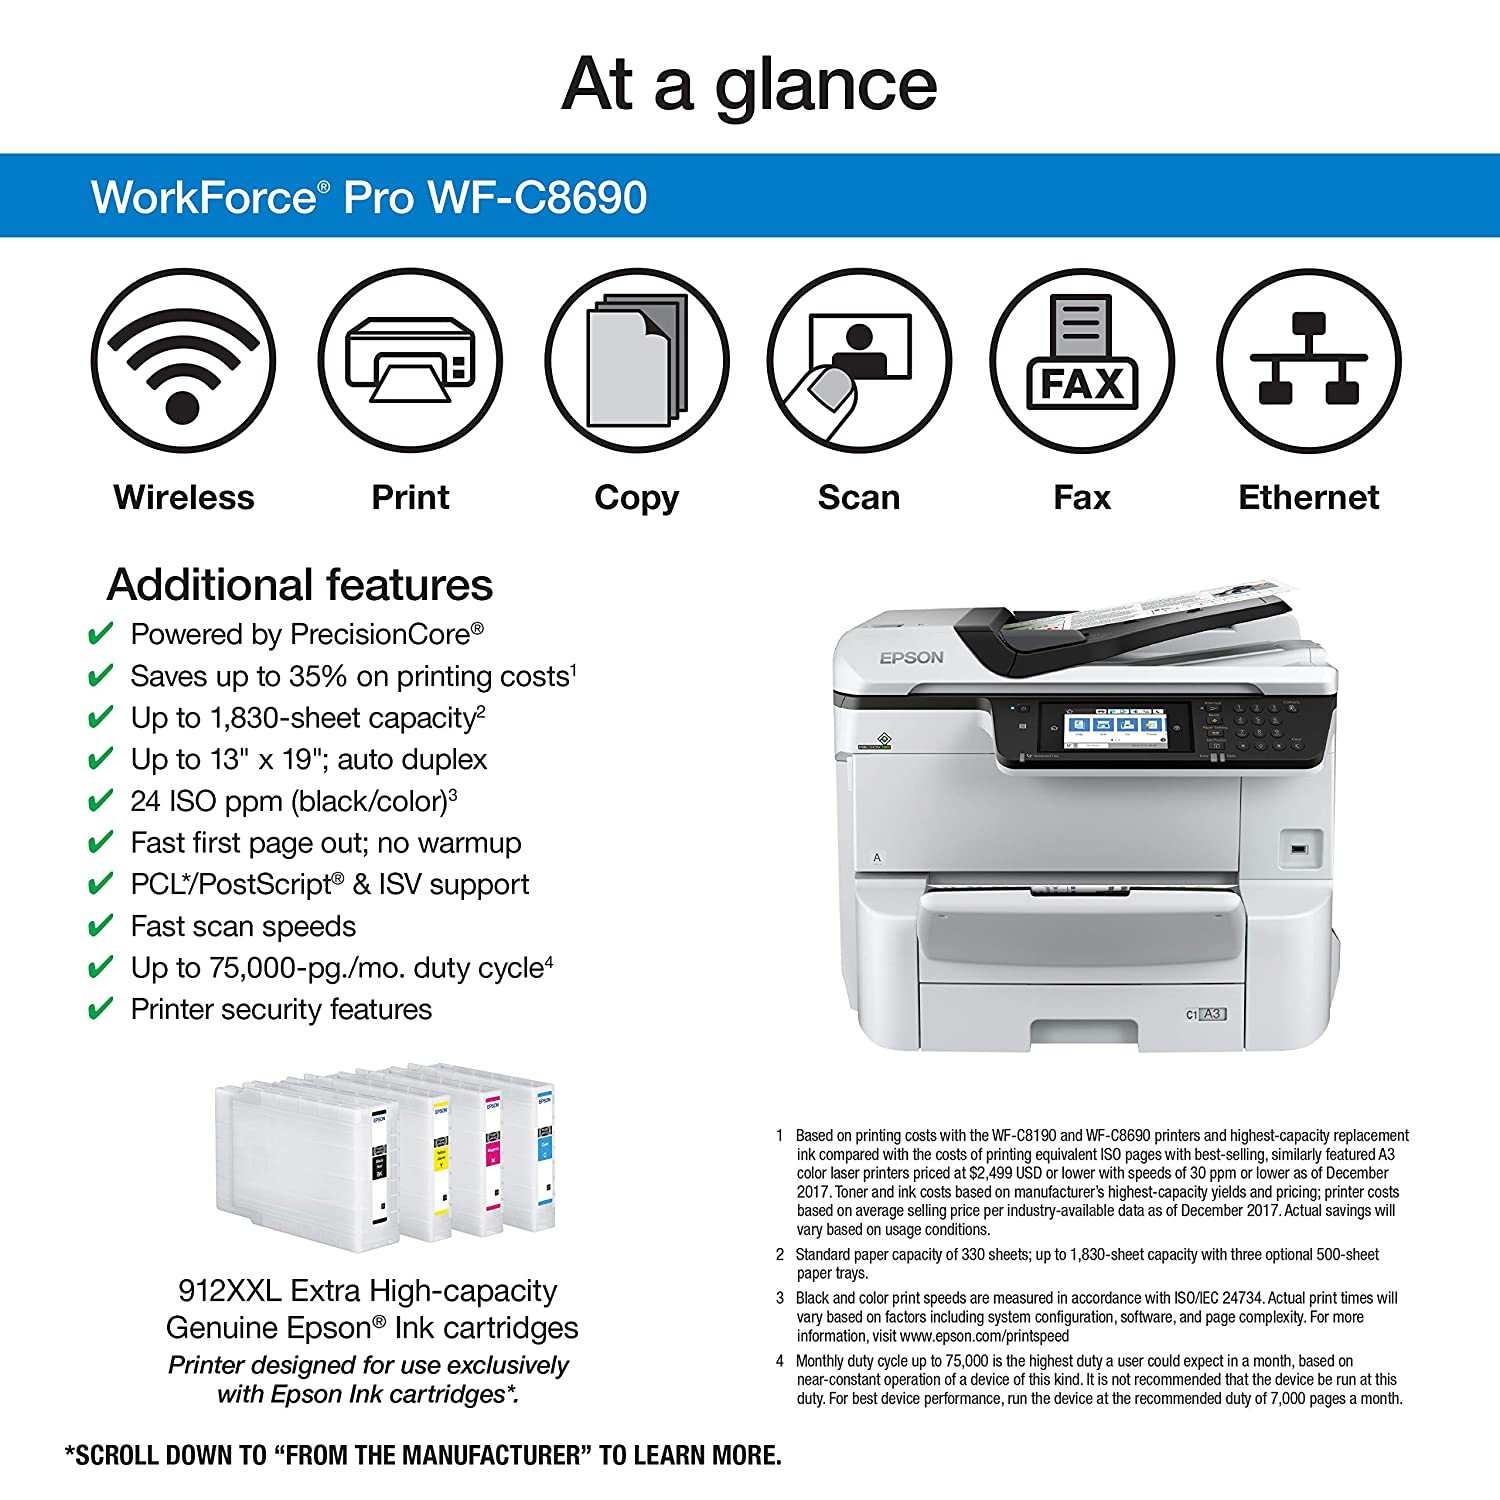 Amazon.com : Epson Workforce Pro WF-C8690 A3 Multifunction ...